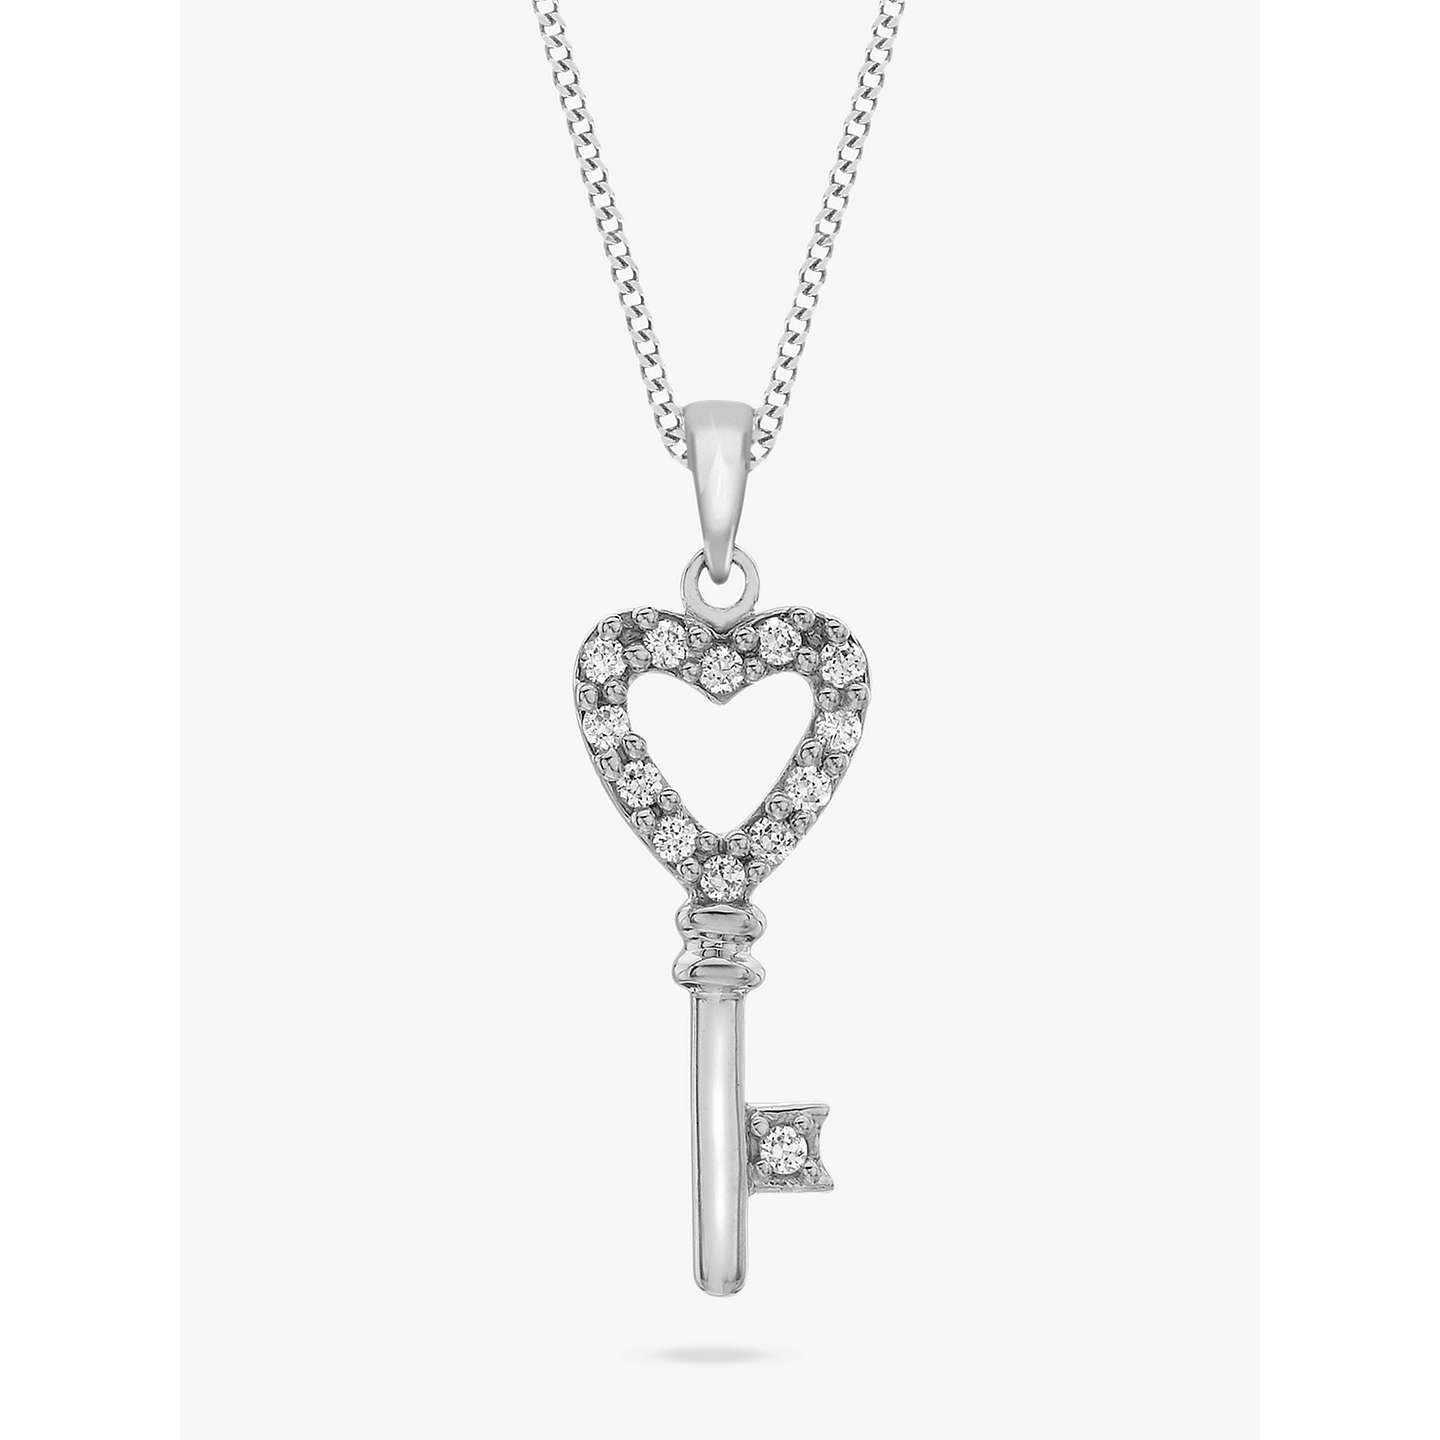 Ibb 9ct white gold cubic zirconia key pendant at john lewis buyibb 9ct white gold cubic zirconia key pendant online at johnlewis aloadofball Image collections